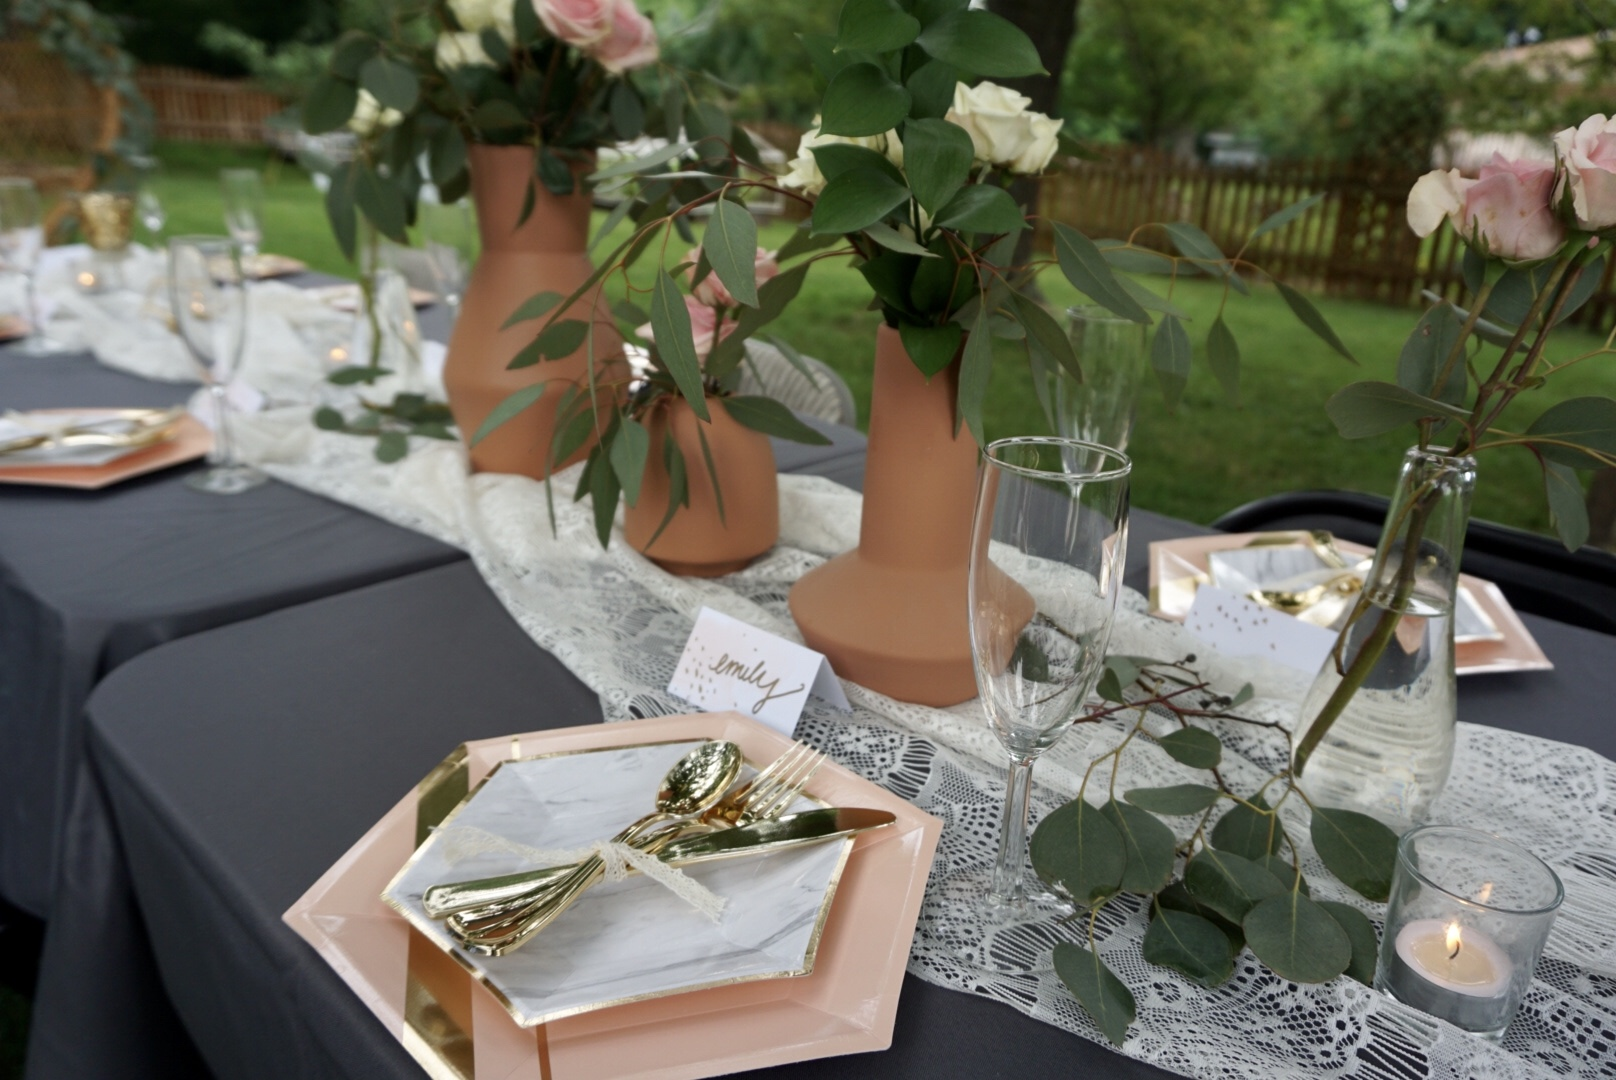 Rosé Before the Big Day bridal shower with pink and gold table settings.